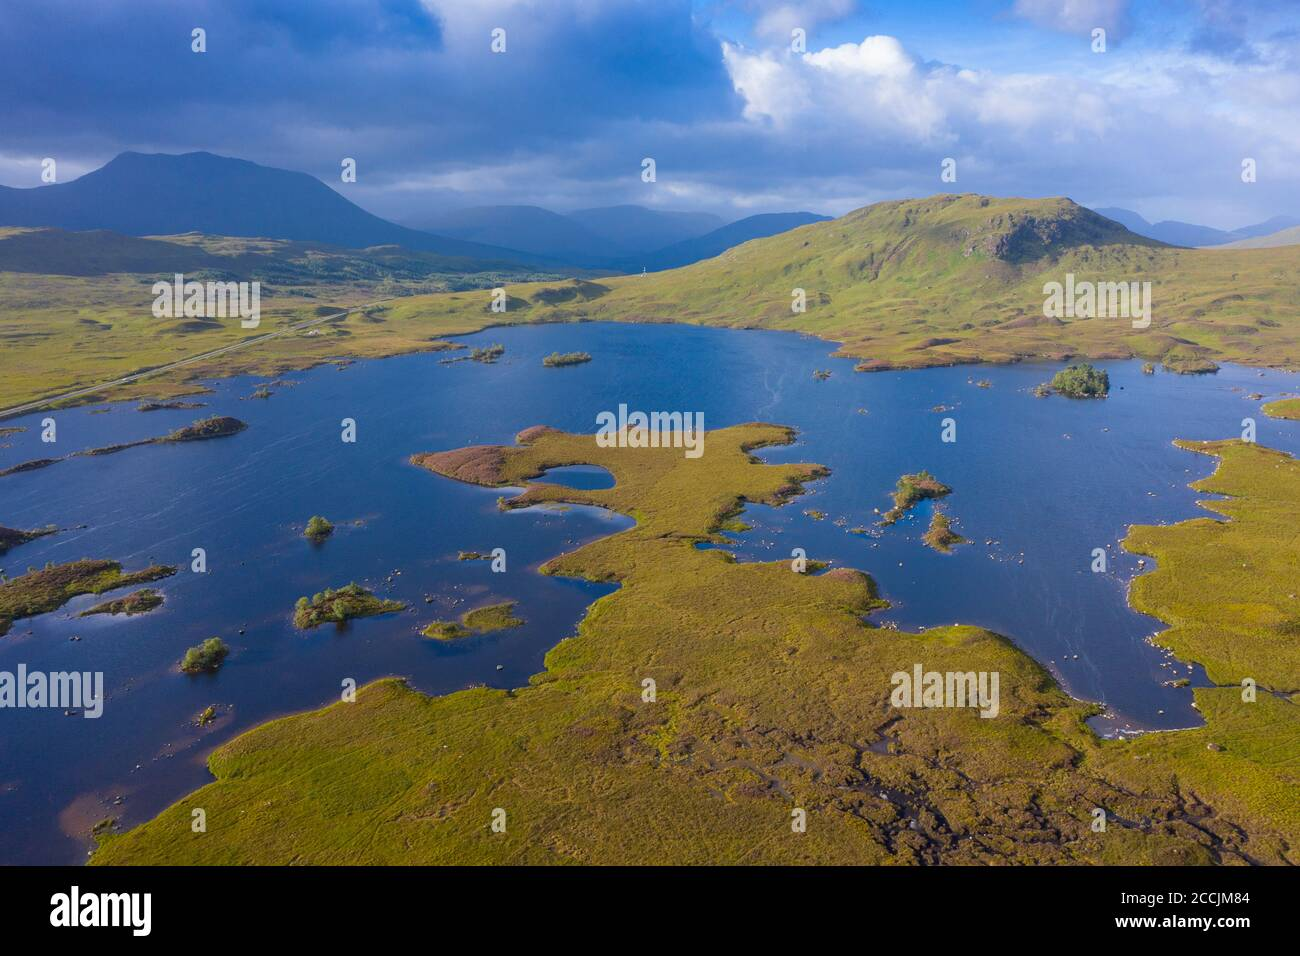 Aerial view of Lochan na h-Achlaise on Rannoch Moor in summer, Scotland, UK Stock Photo